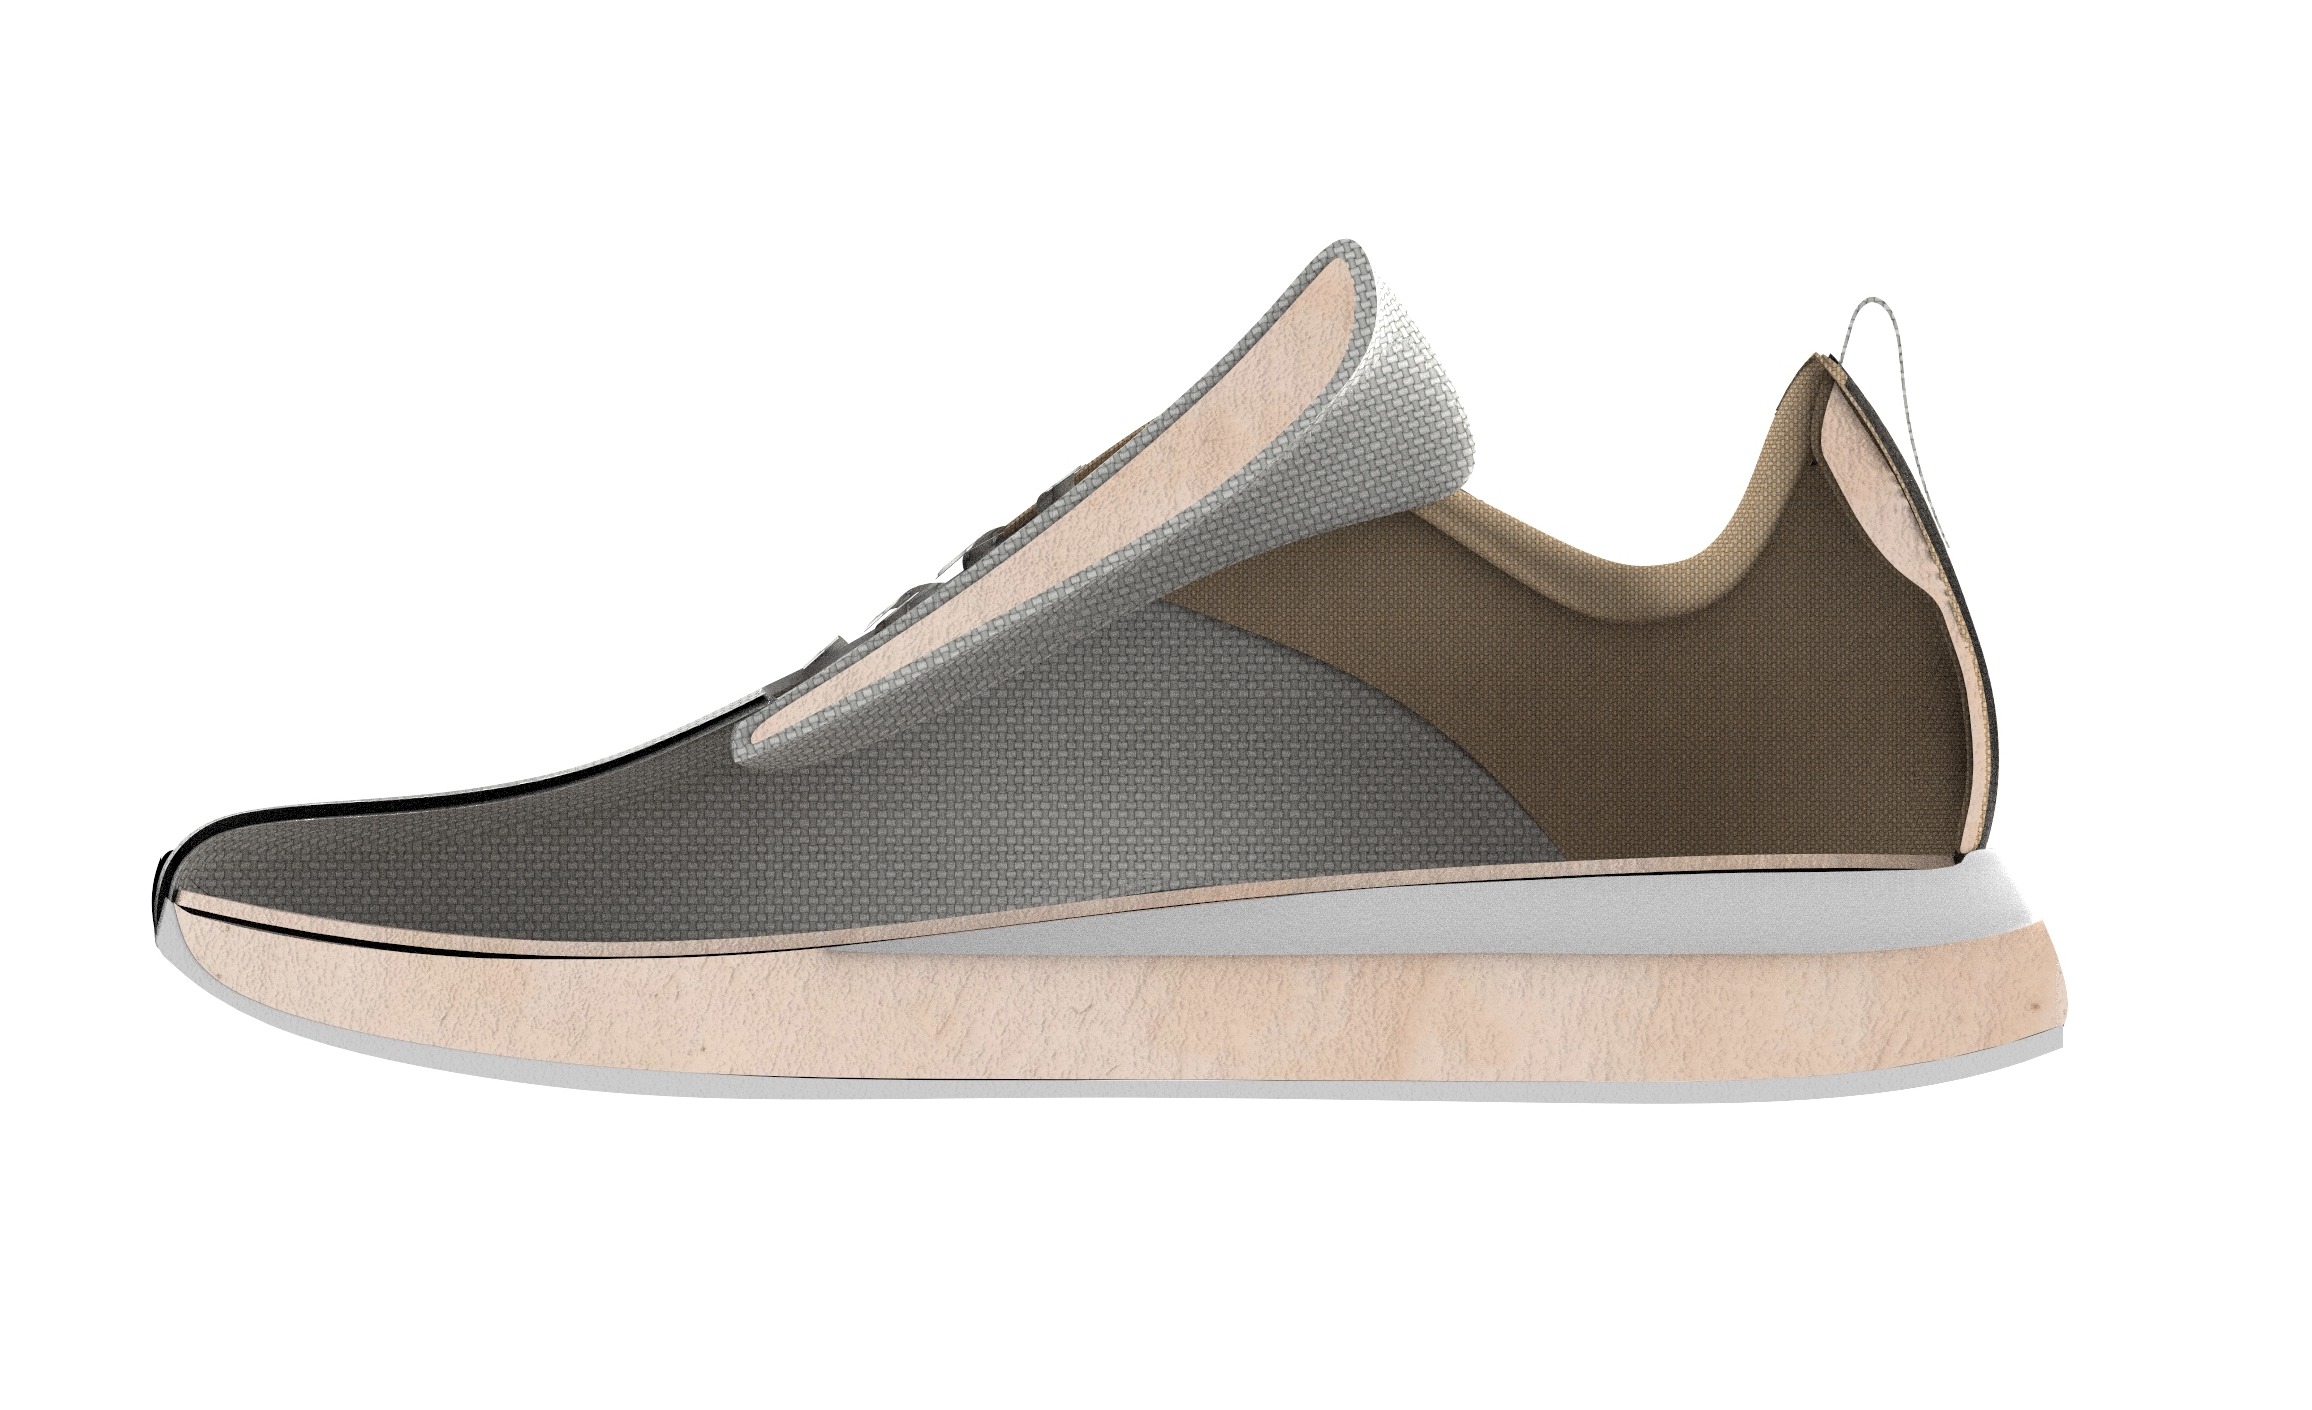 Support Padding - Mycelium foams offer a sustainable alternative to traditional support foams used in footwear which are plastic-based and do not degrade after the product's life cycle.